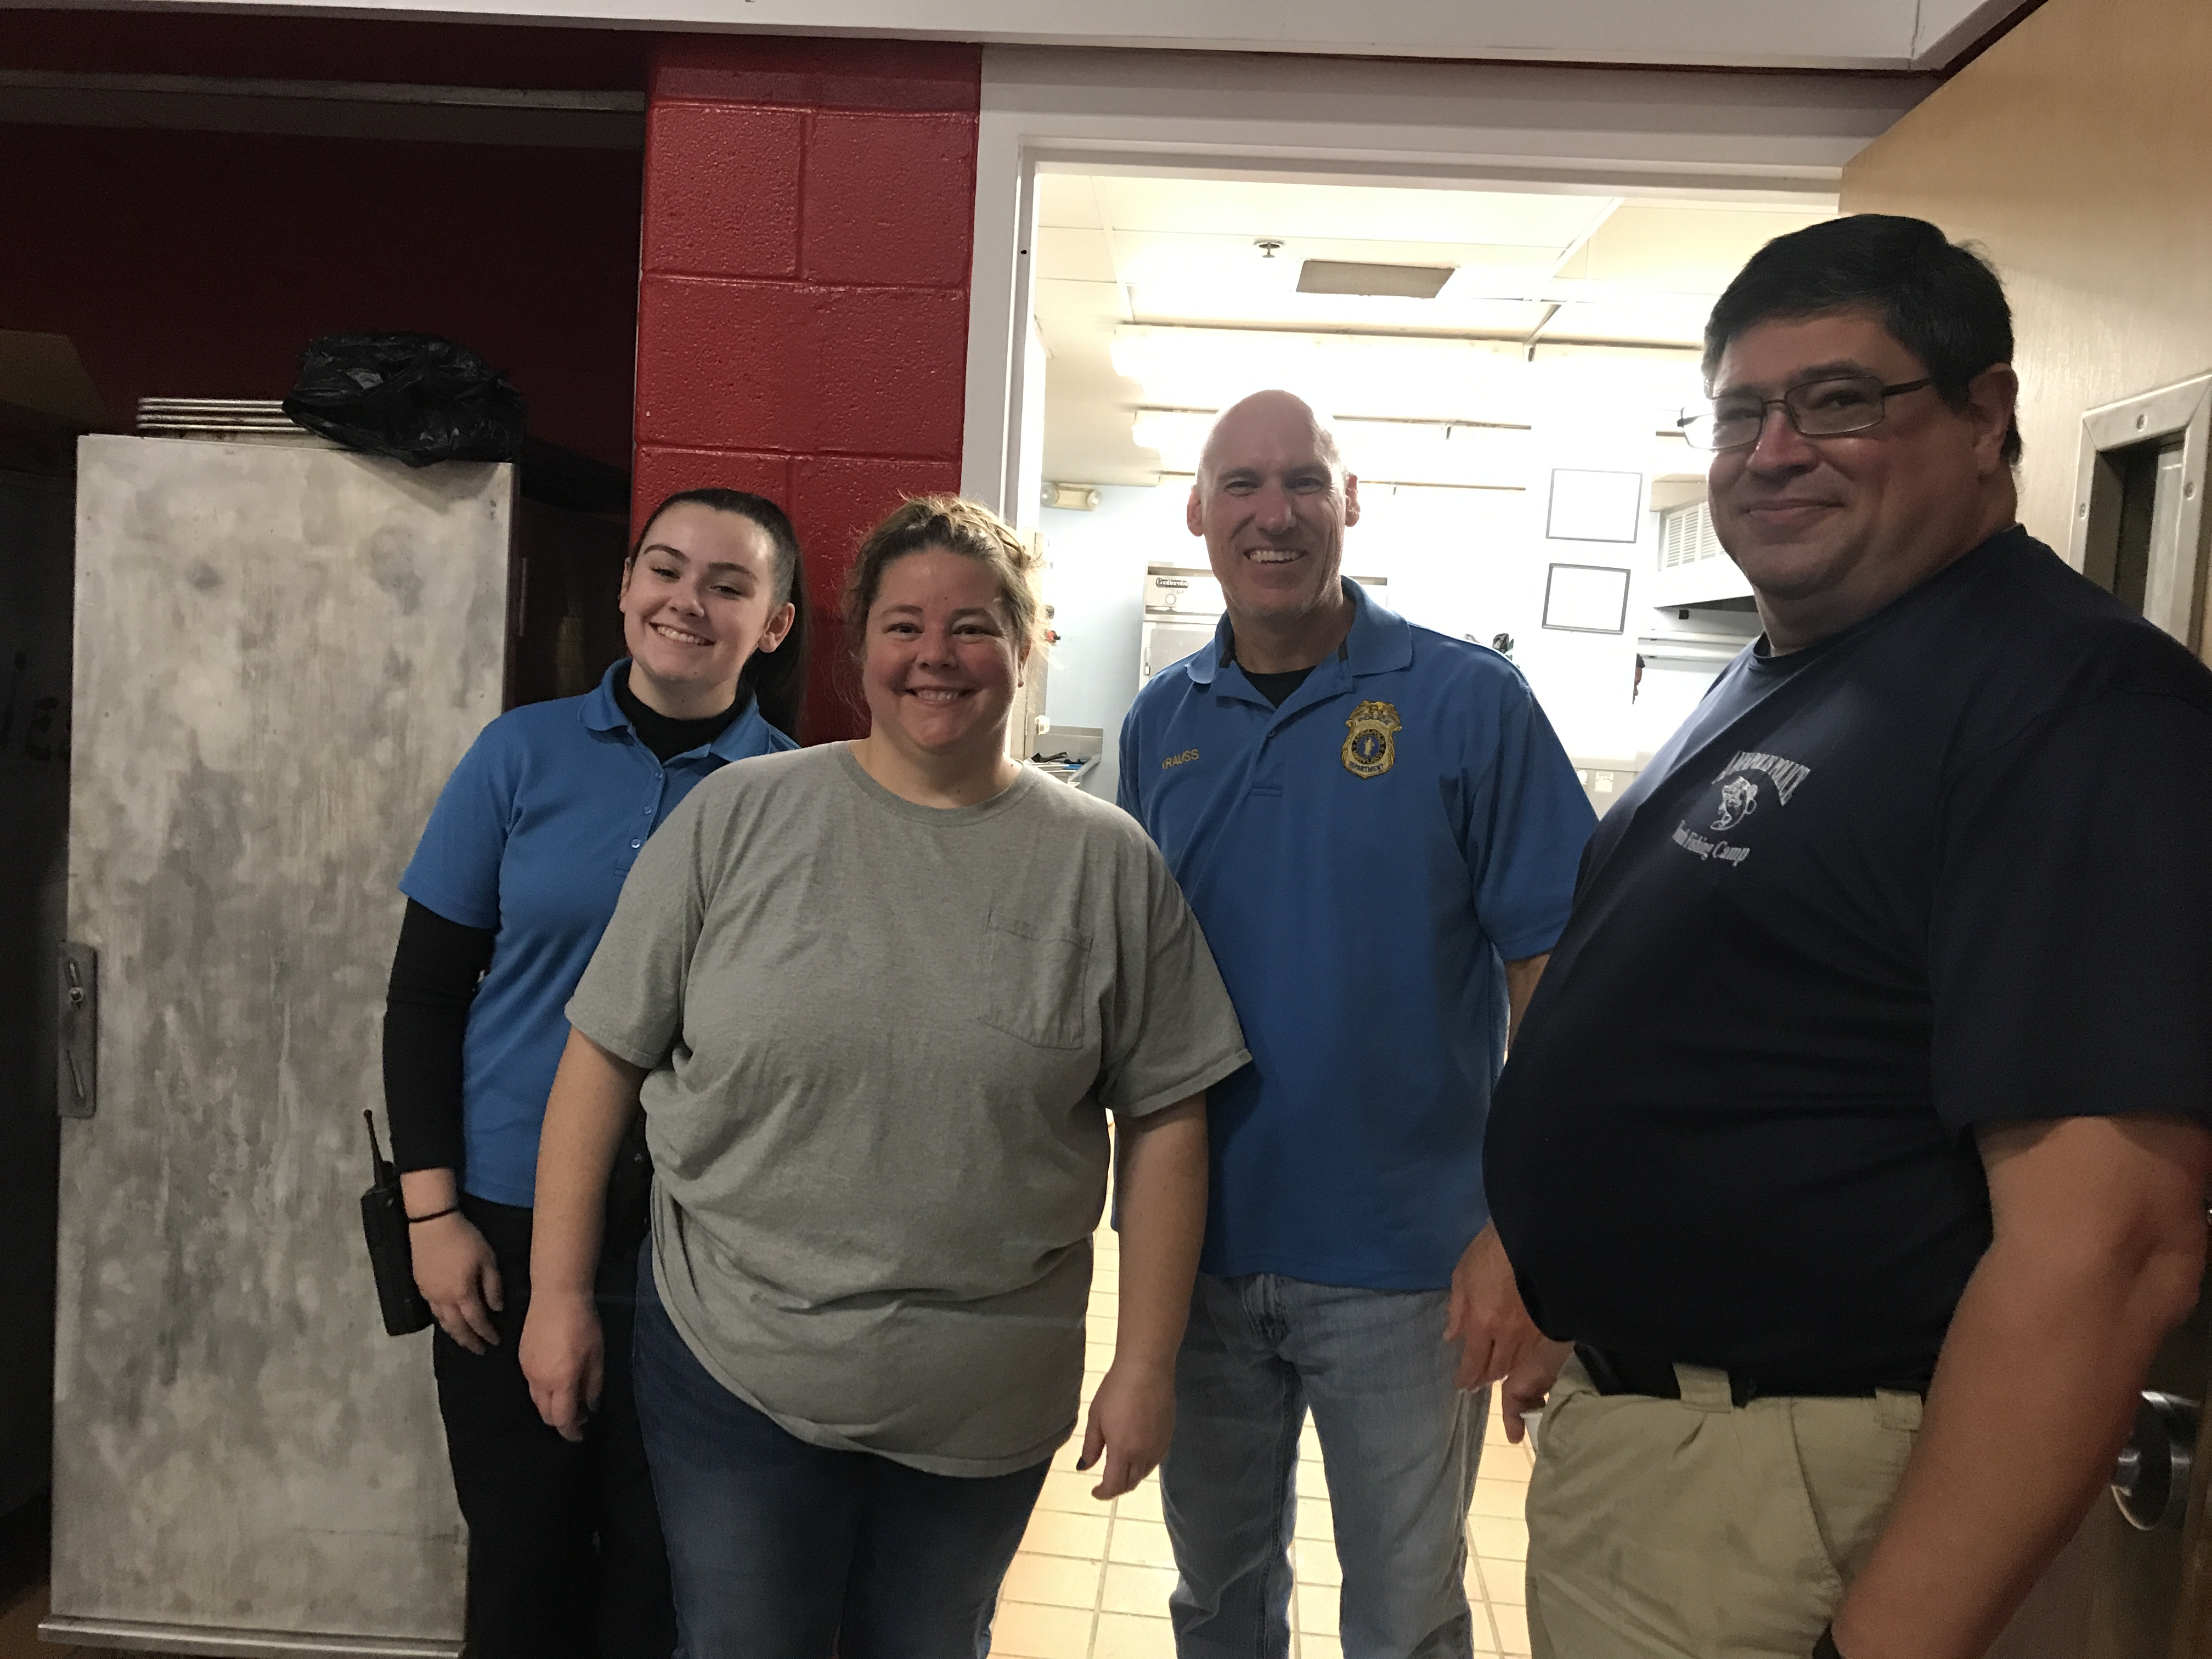 A group of police department employees stand outside a kitchen.